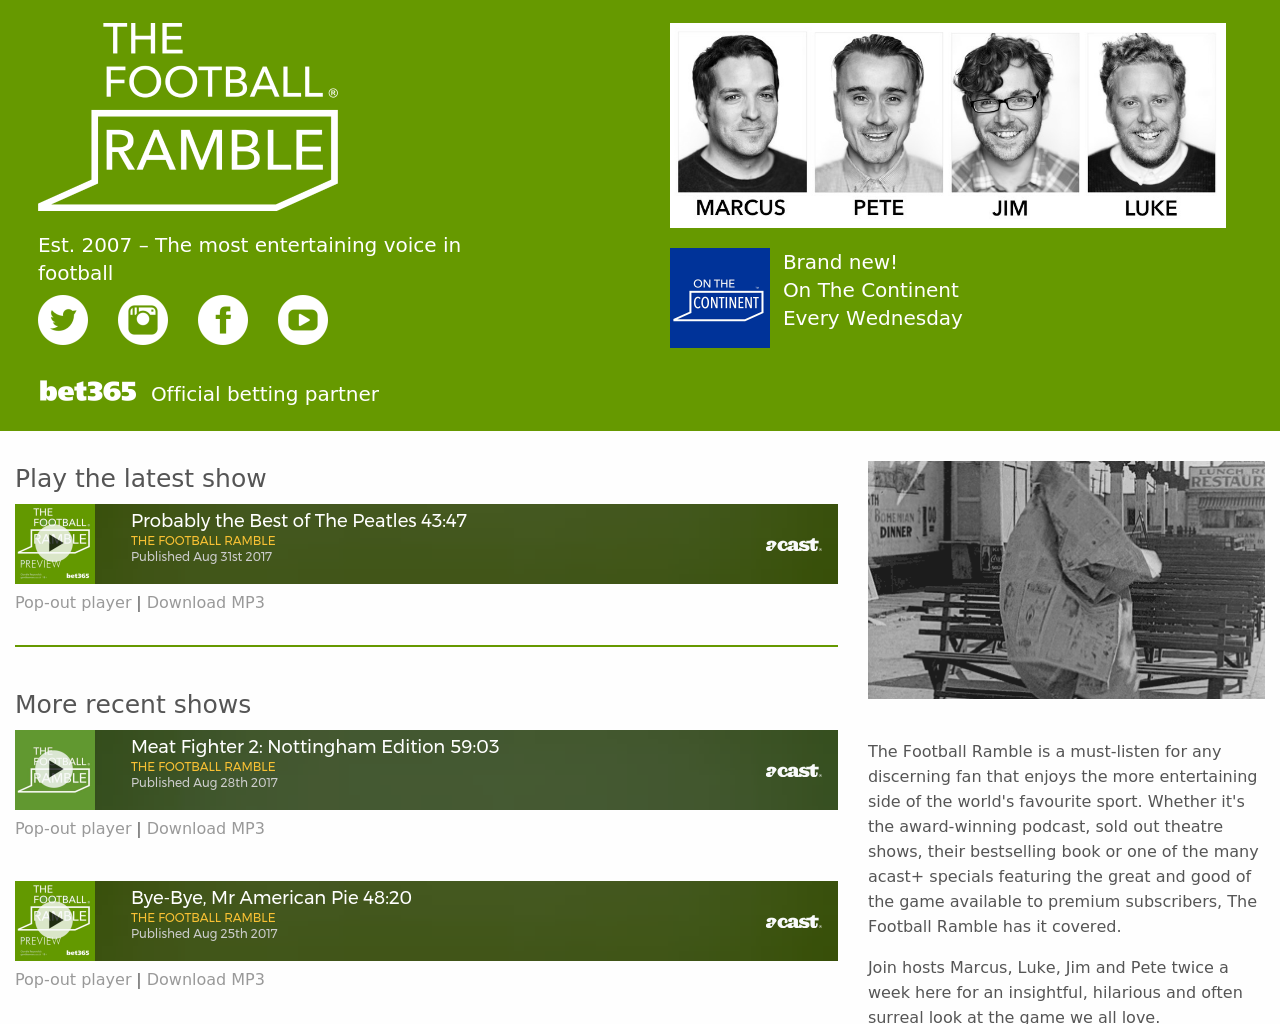 The-Football-Ramble-Advertising-Reviews-Pricing